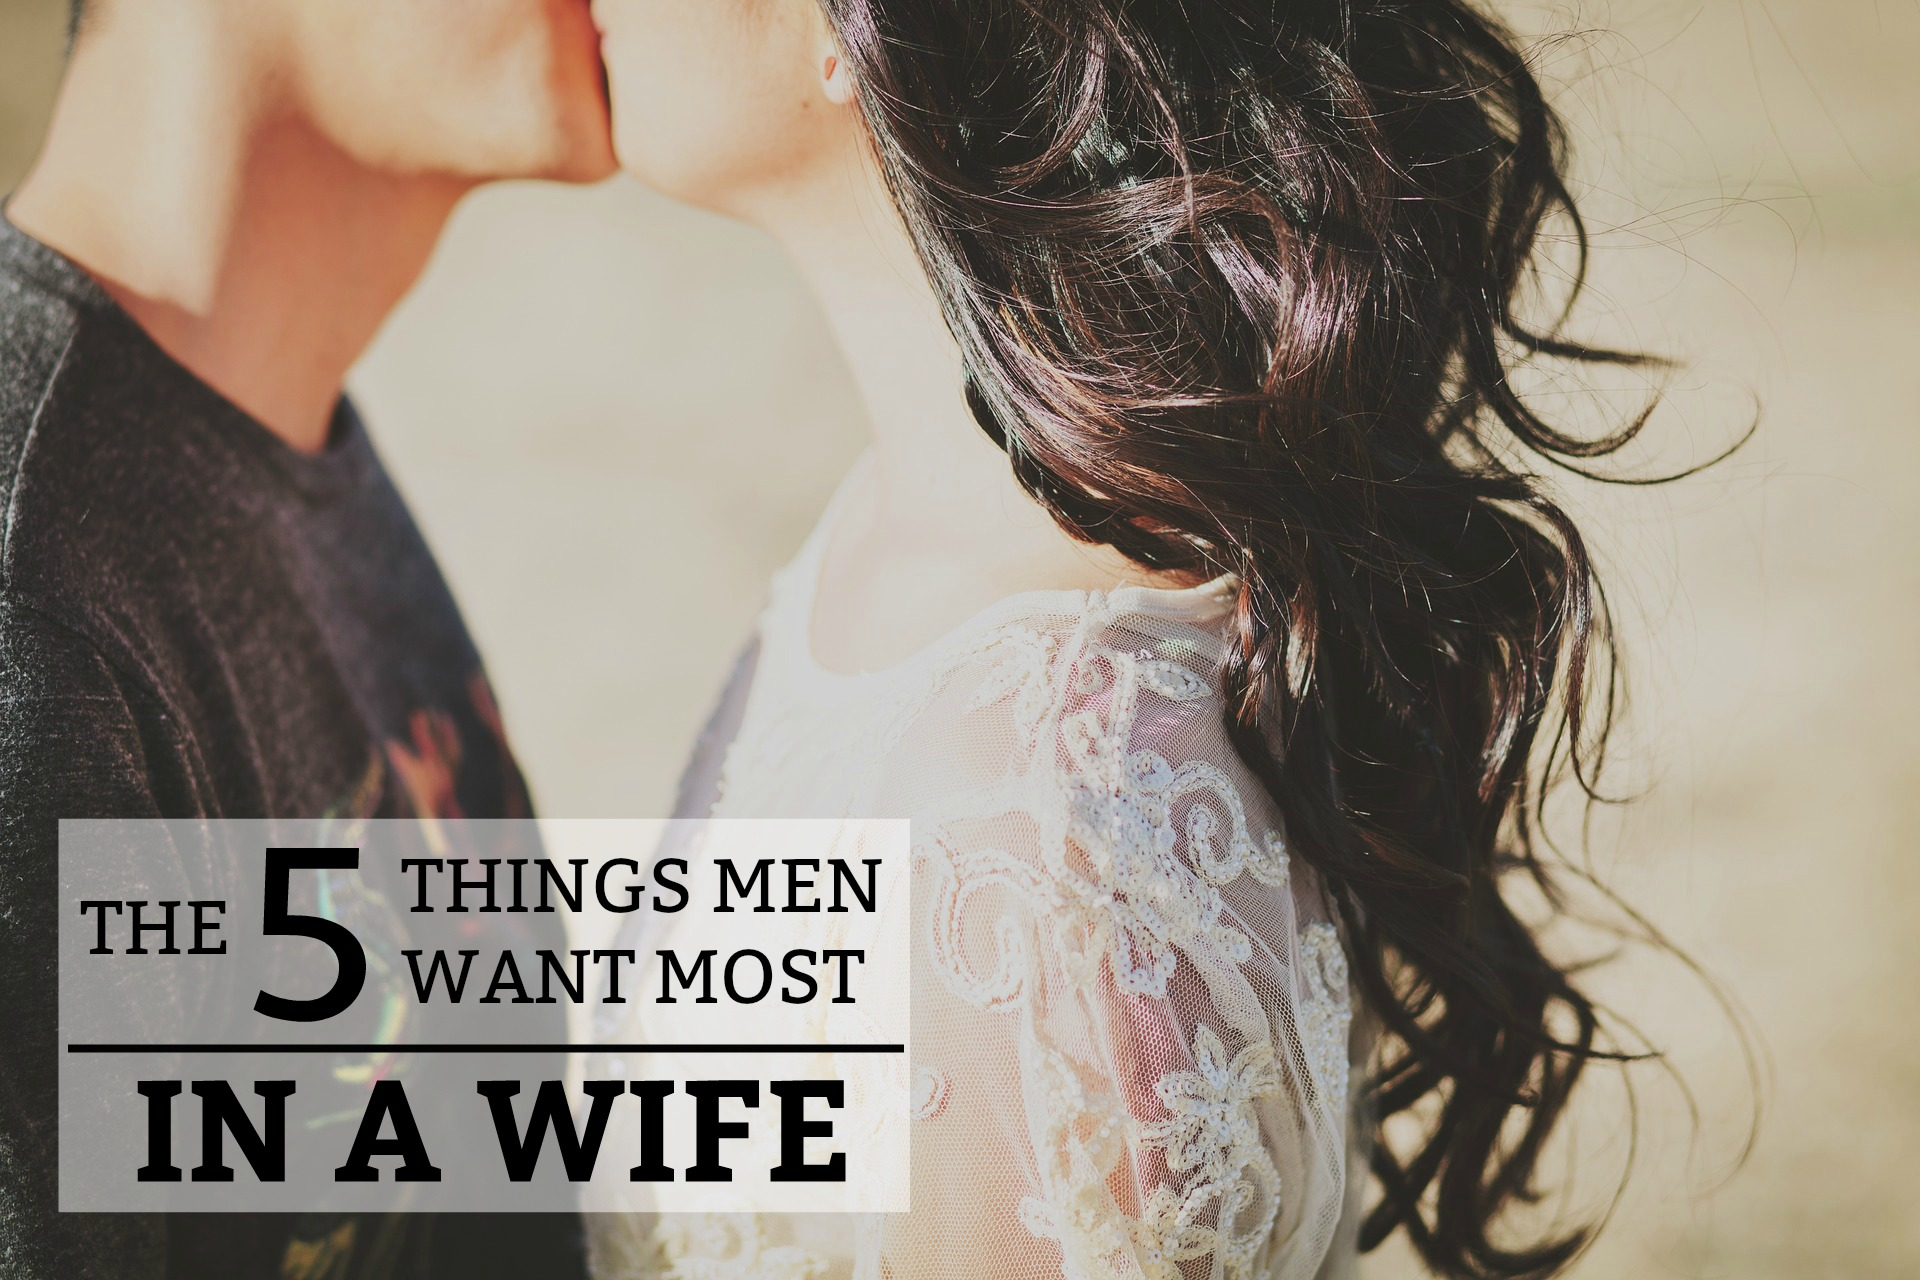 The 5 Things Men Want Most in a Wife - a practical guide to understanding the wants and needs of your husband. www.tradingaverage.com